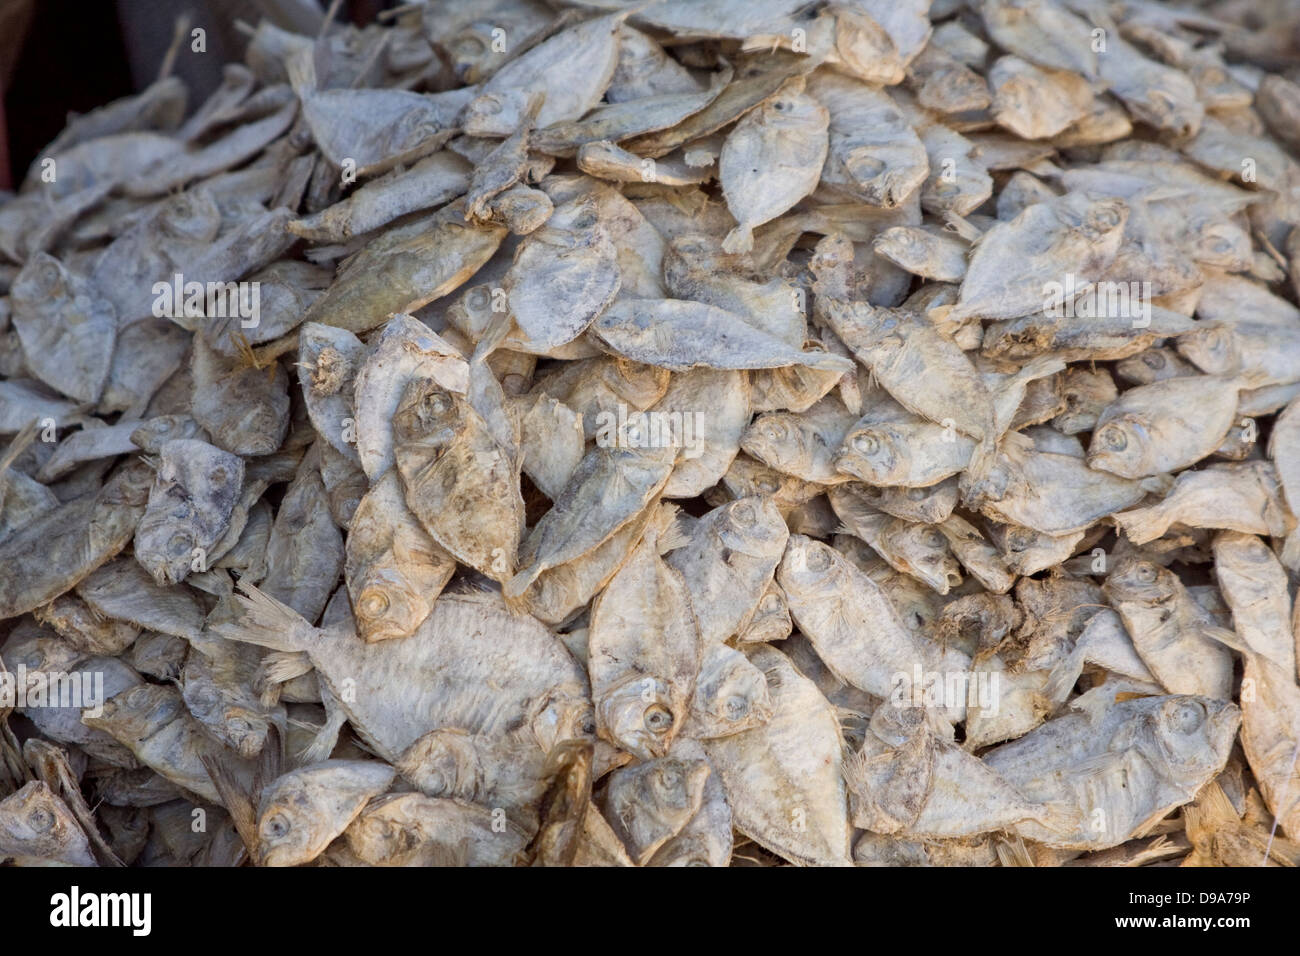 Asia, India, Karnataka, Madikeri, dried fish on the market - Stock Image